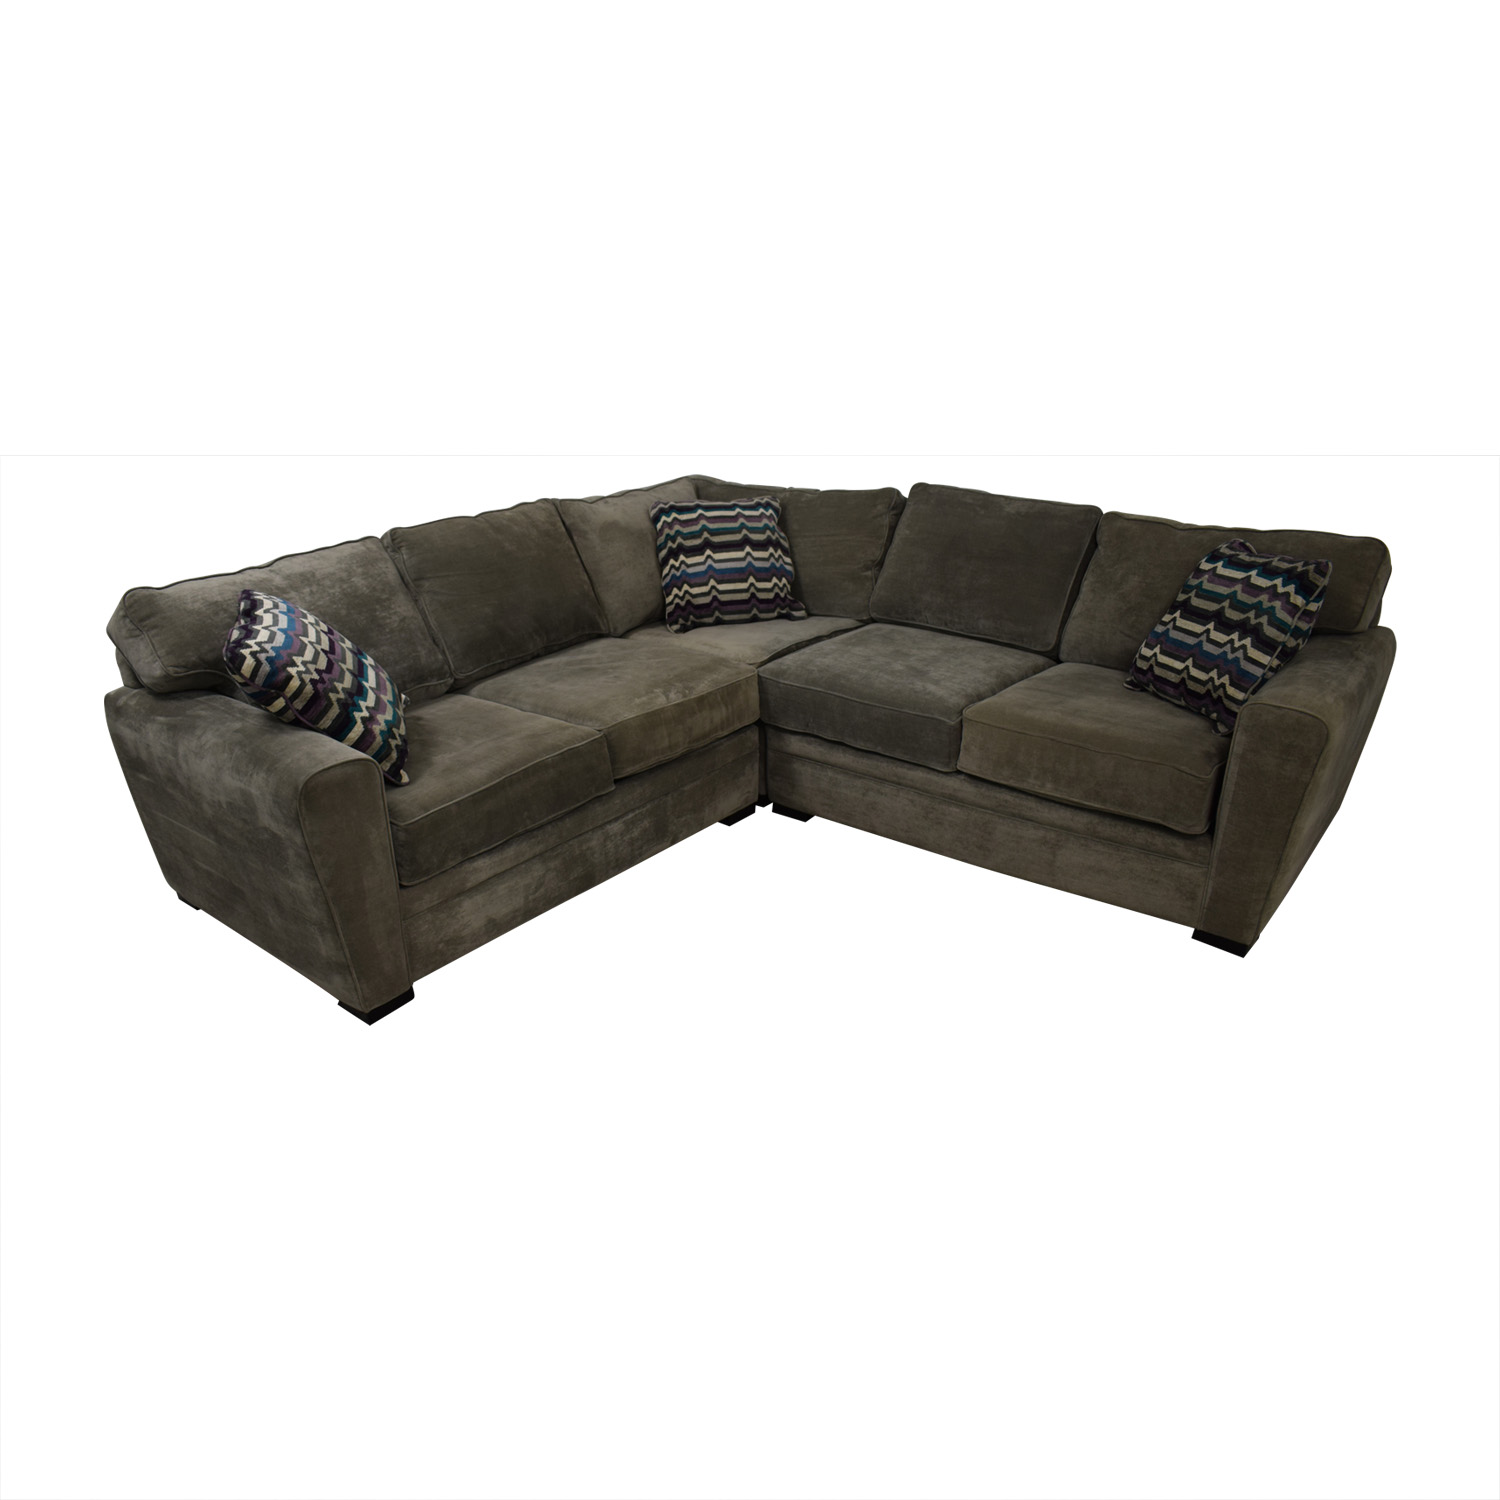 shop Raymour & Flanigan Raymour & Flanigan Artemis II Gray Microfiber L-Shaped Sectional Sofa online